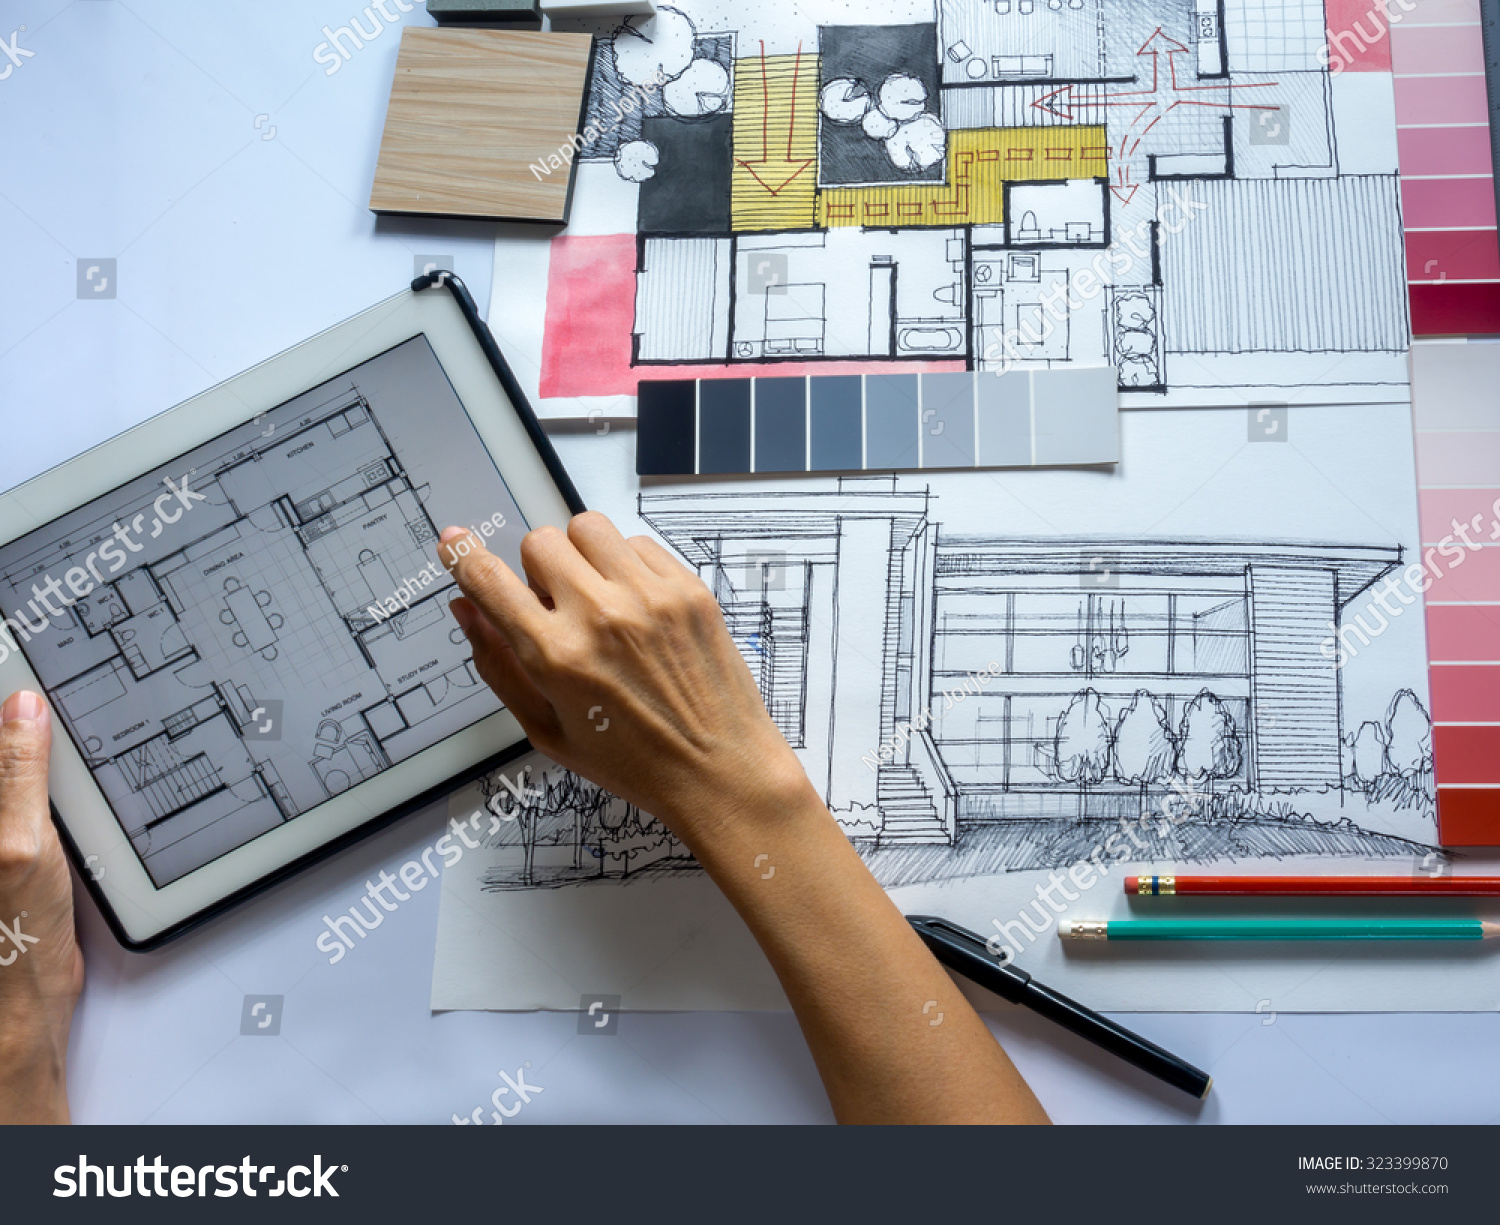 Top view of architects interior designers hands working on table with tablet and illustration for Best tablet for interior designers